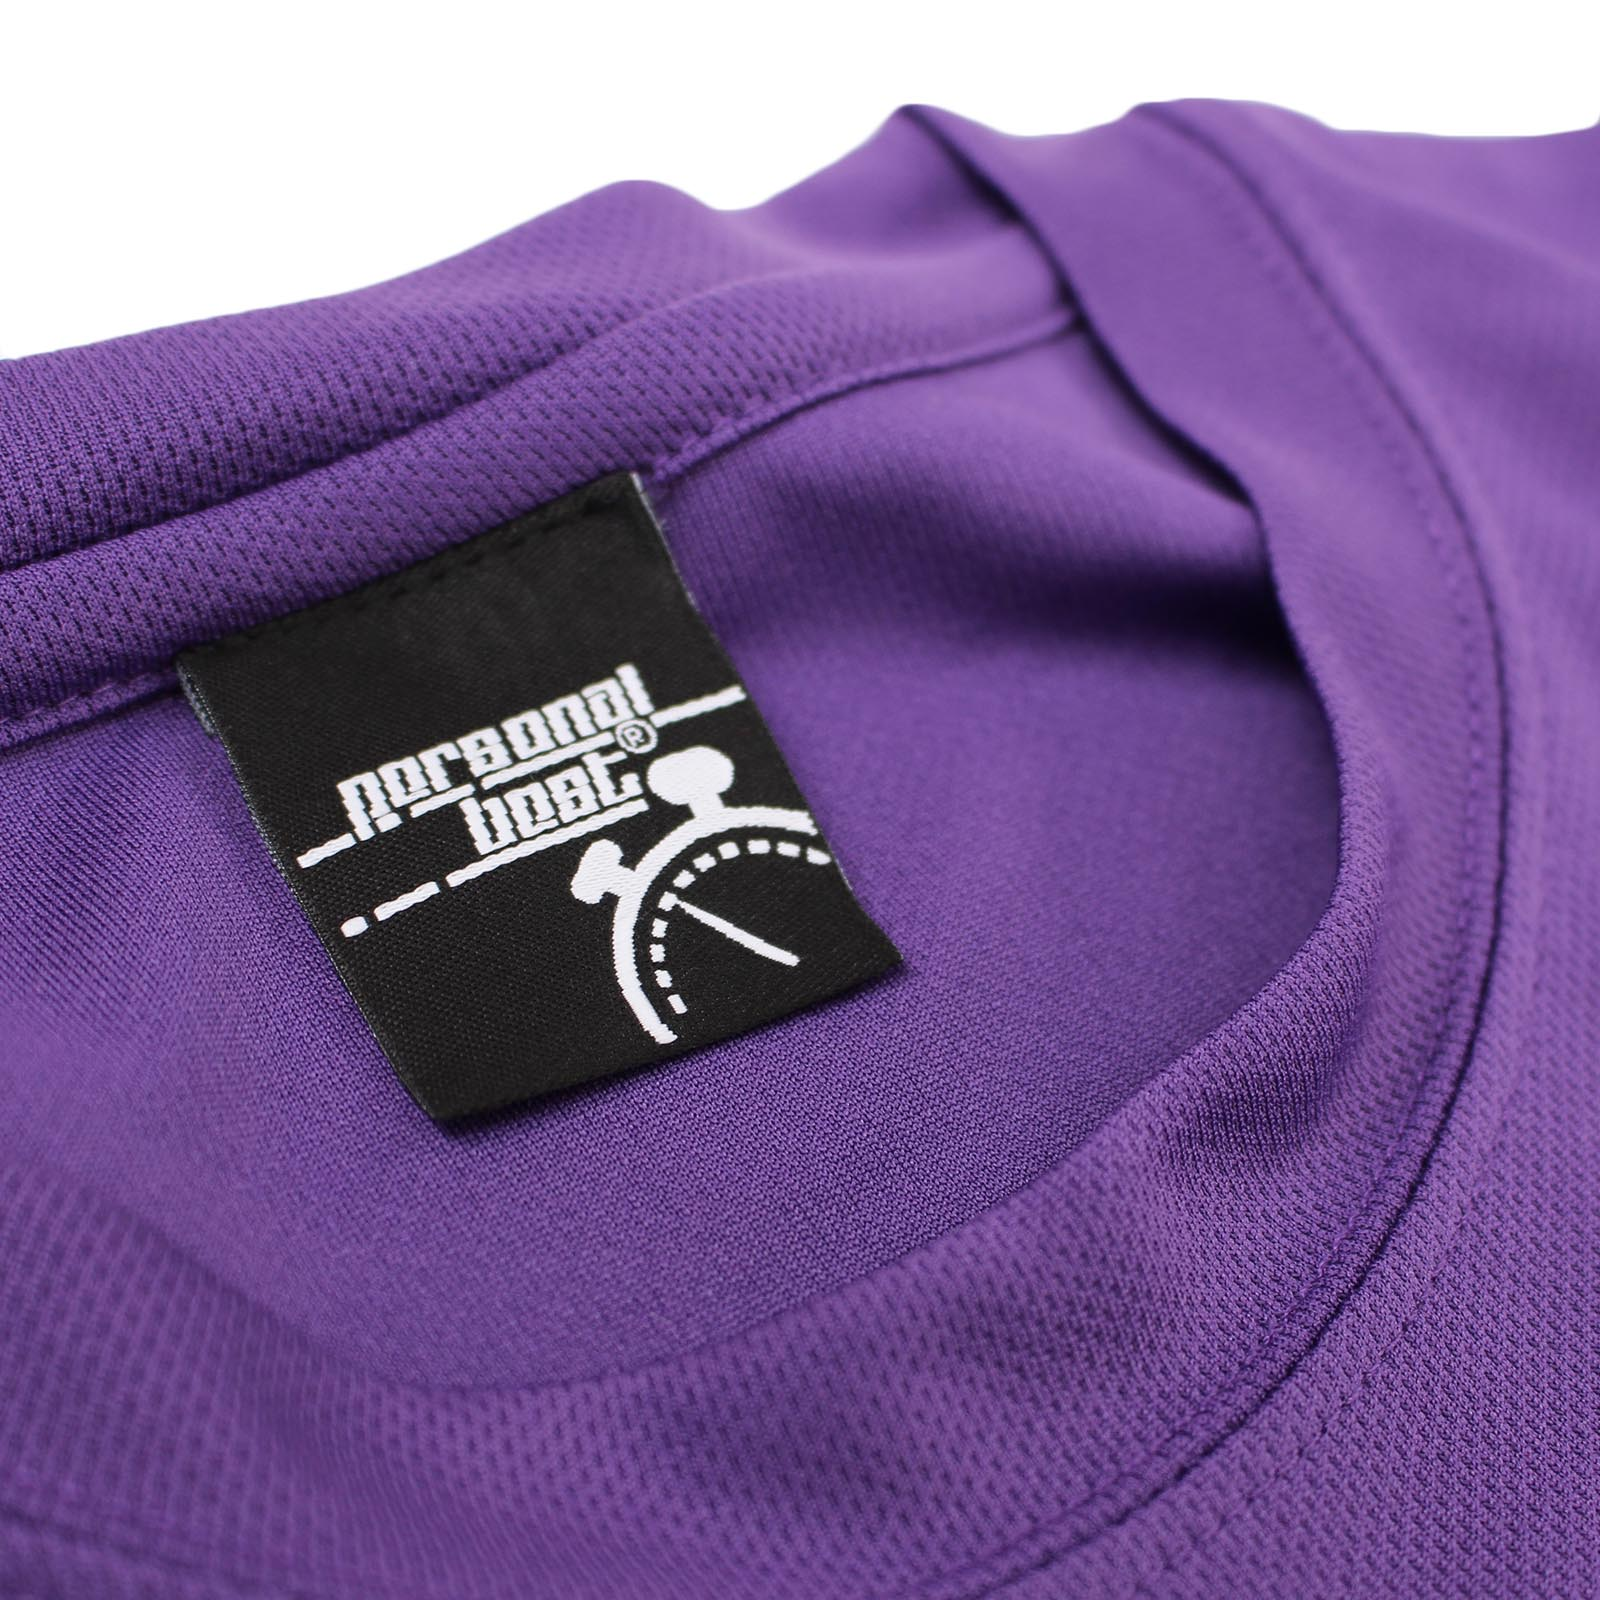 FB Running Tee Sweat For A Purpose Novelty Dry Fit Performance T-Shirt